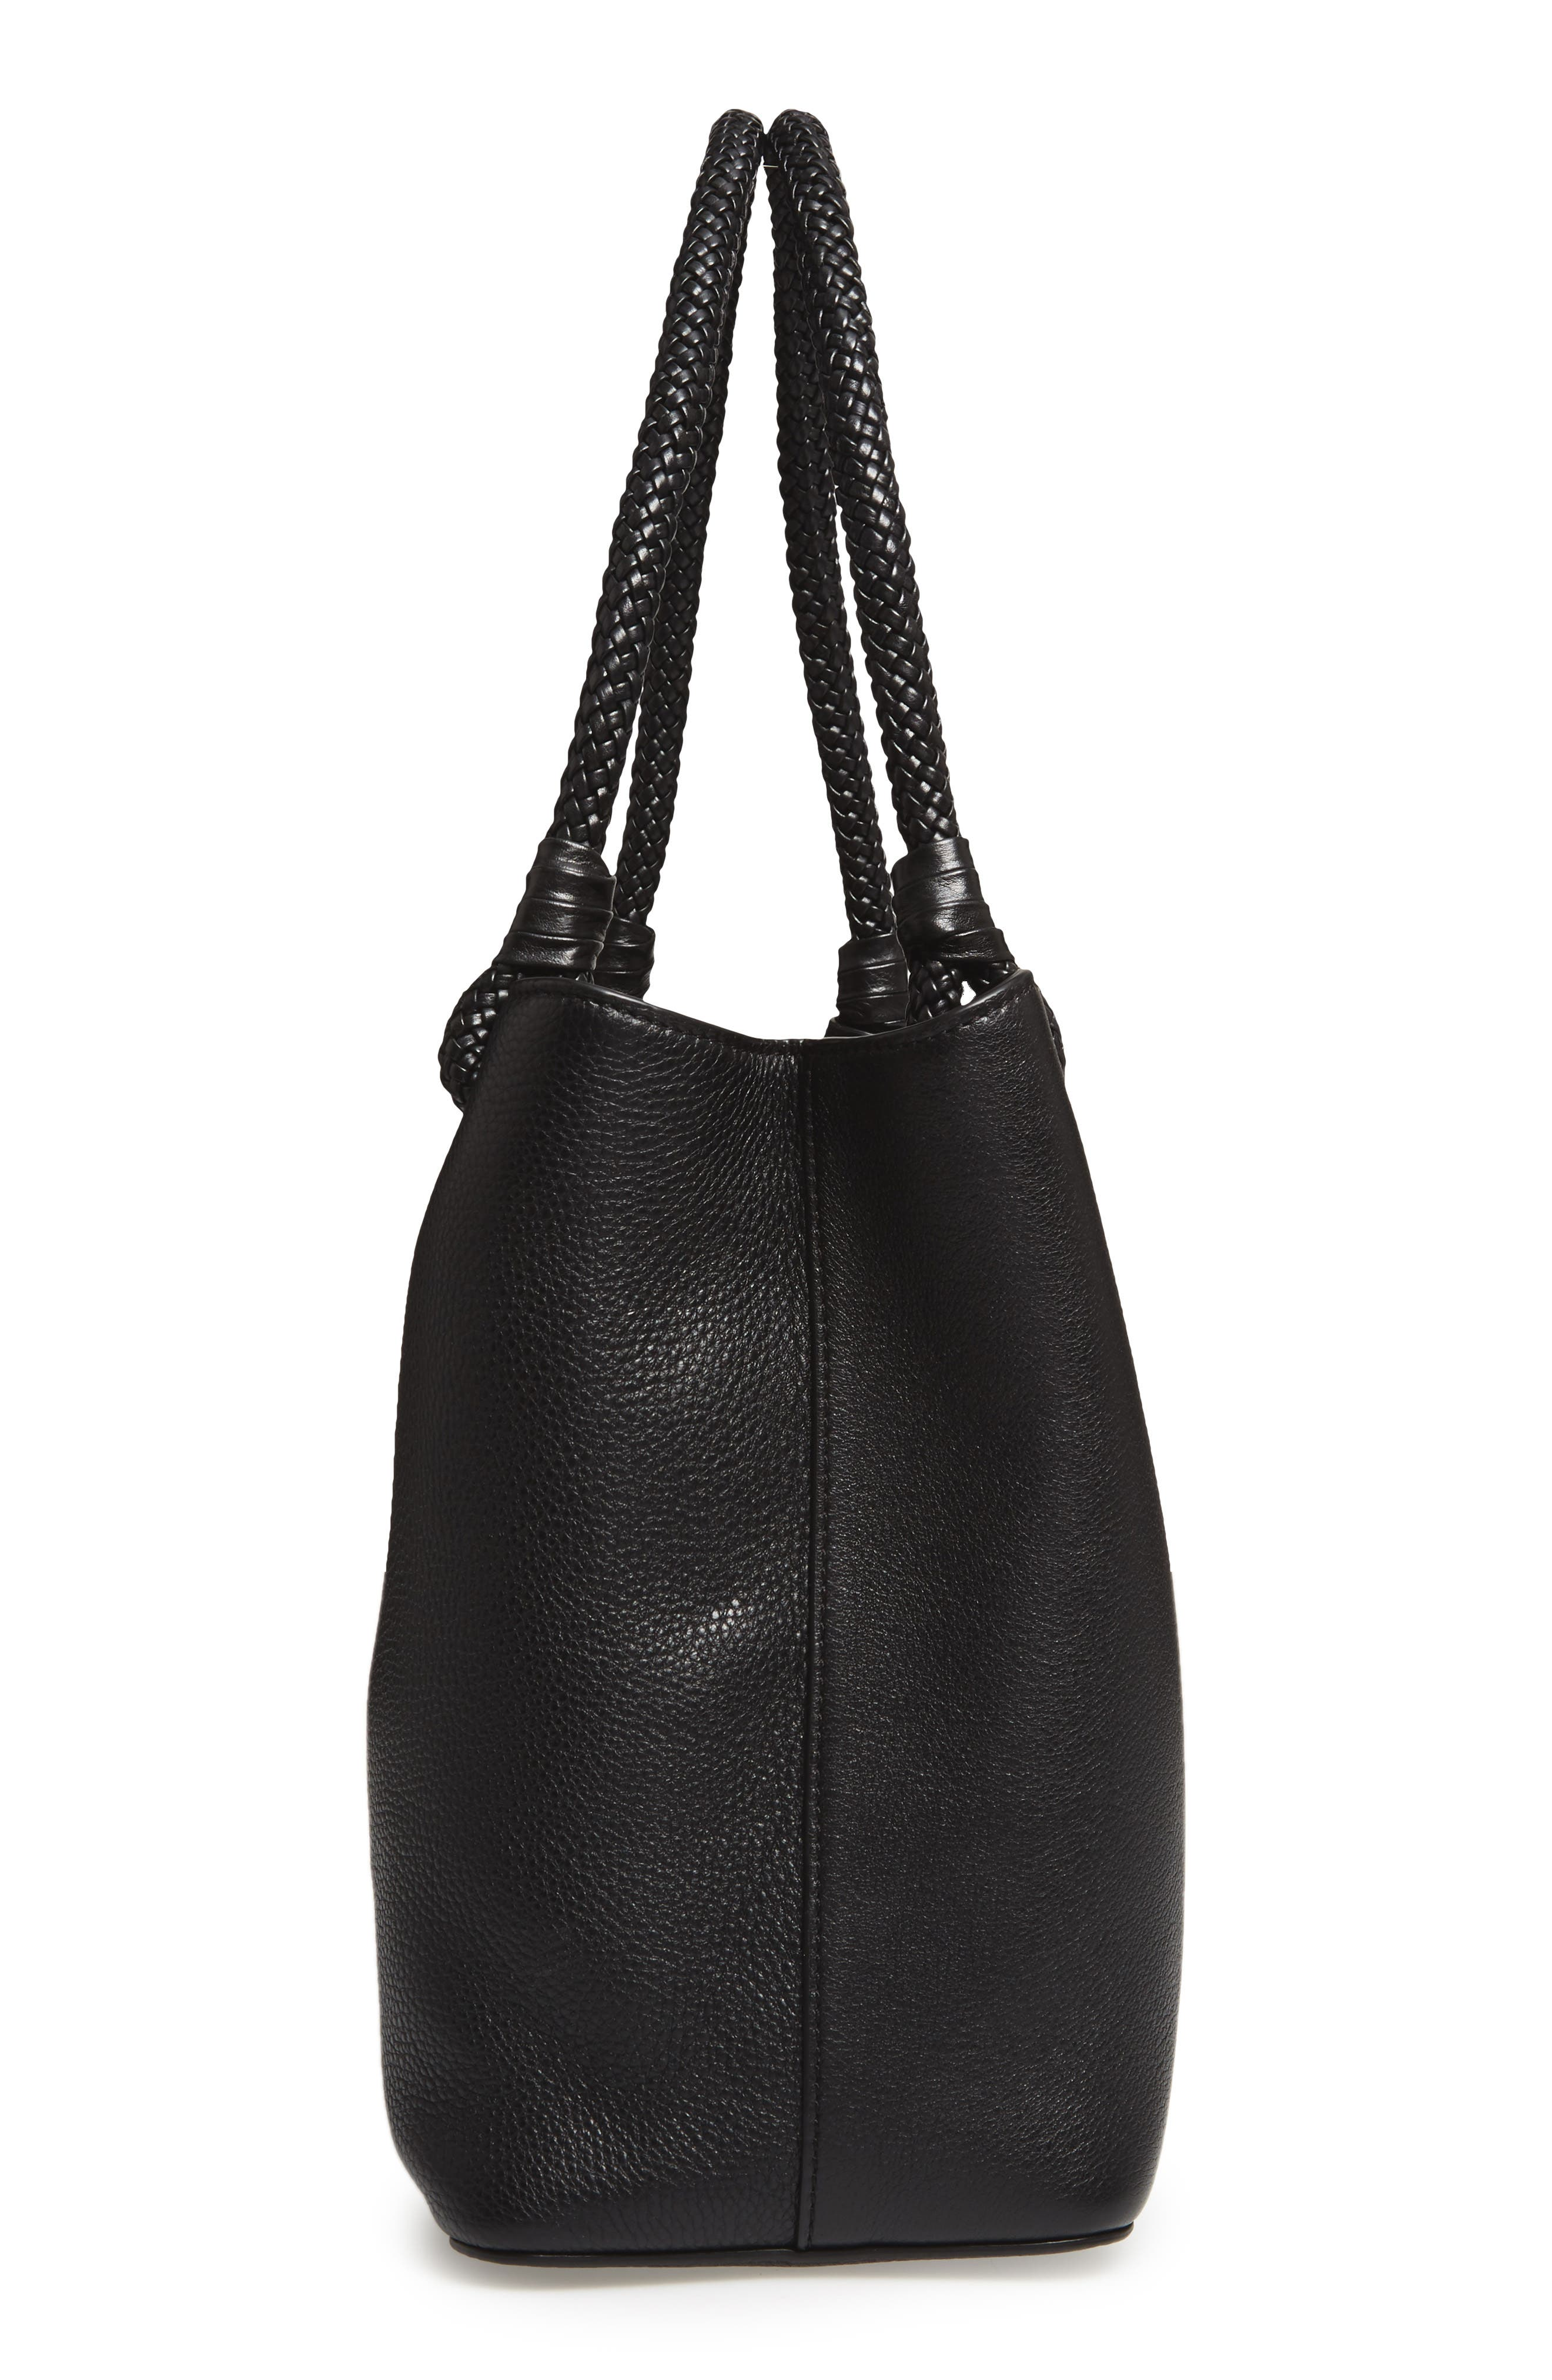 Taylor Triple-Compartment Leather Tote,                             Alternate thumbnail 5, color,                             001